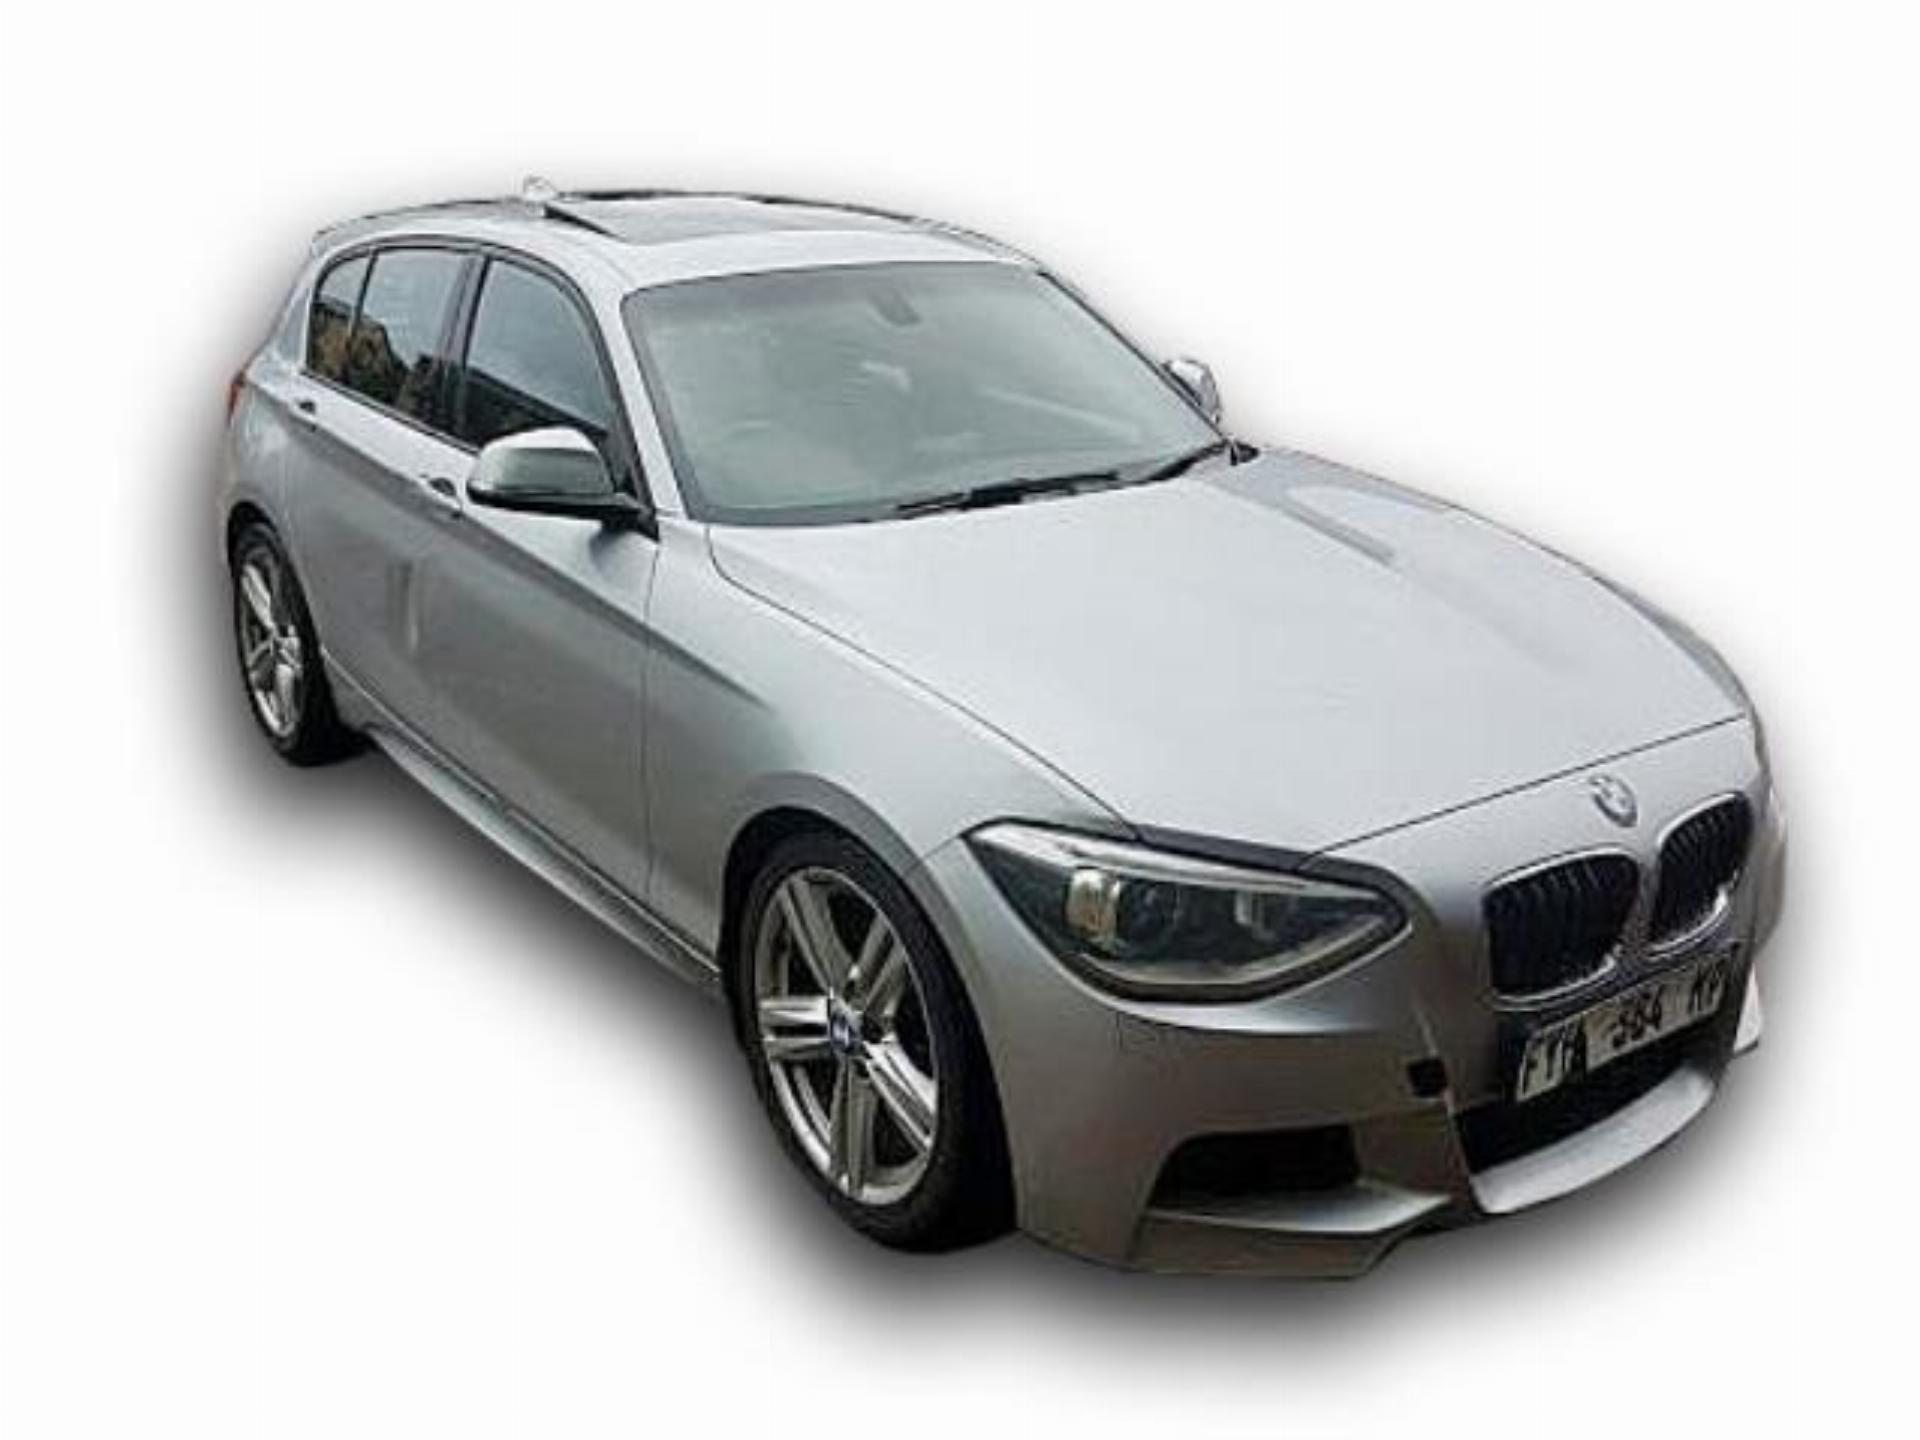 used 1 series 2012 bmw 116i f20 msports 2012 on auction pv1021022. Black Bedroom Furniture Sets. Home Design Ideas